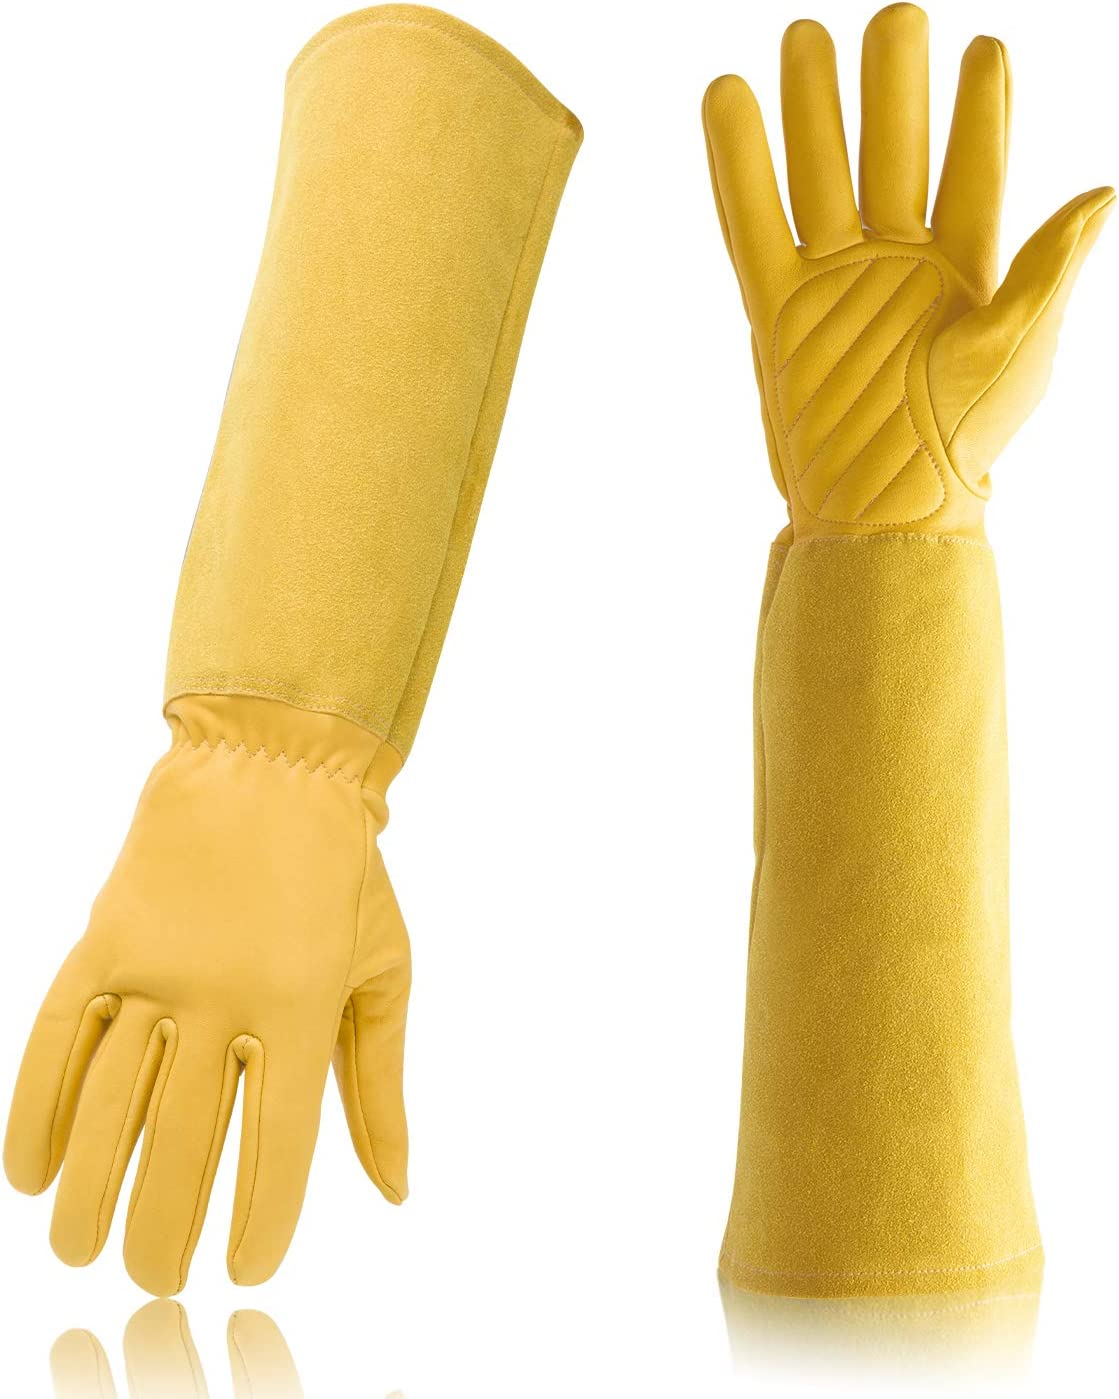 Gardening Gloves Professional Rose Pruning Thorn & Cut Proof with Long Forearm Protection for Women/Men Durable Thick Cowhide Leather Work Garden Gloves